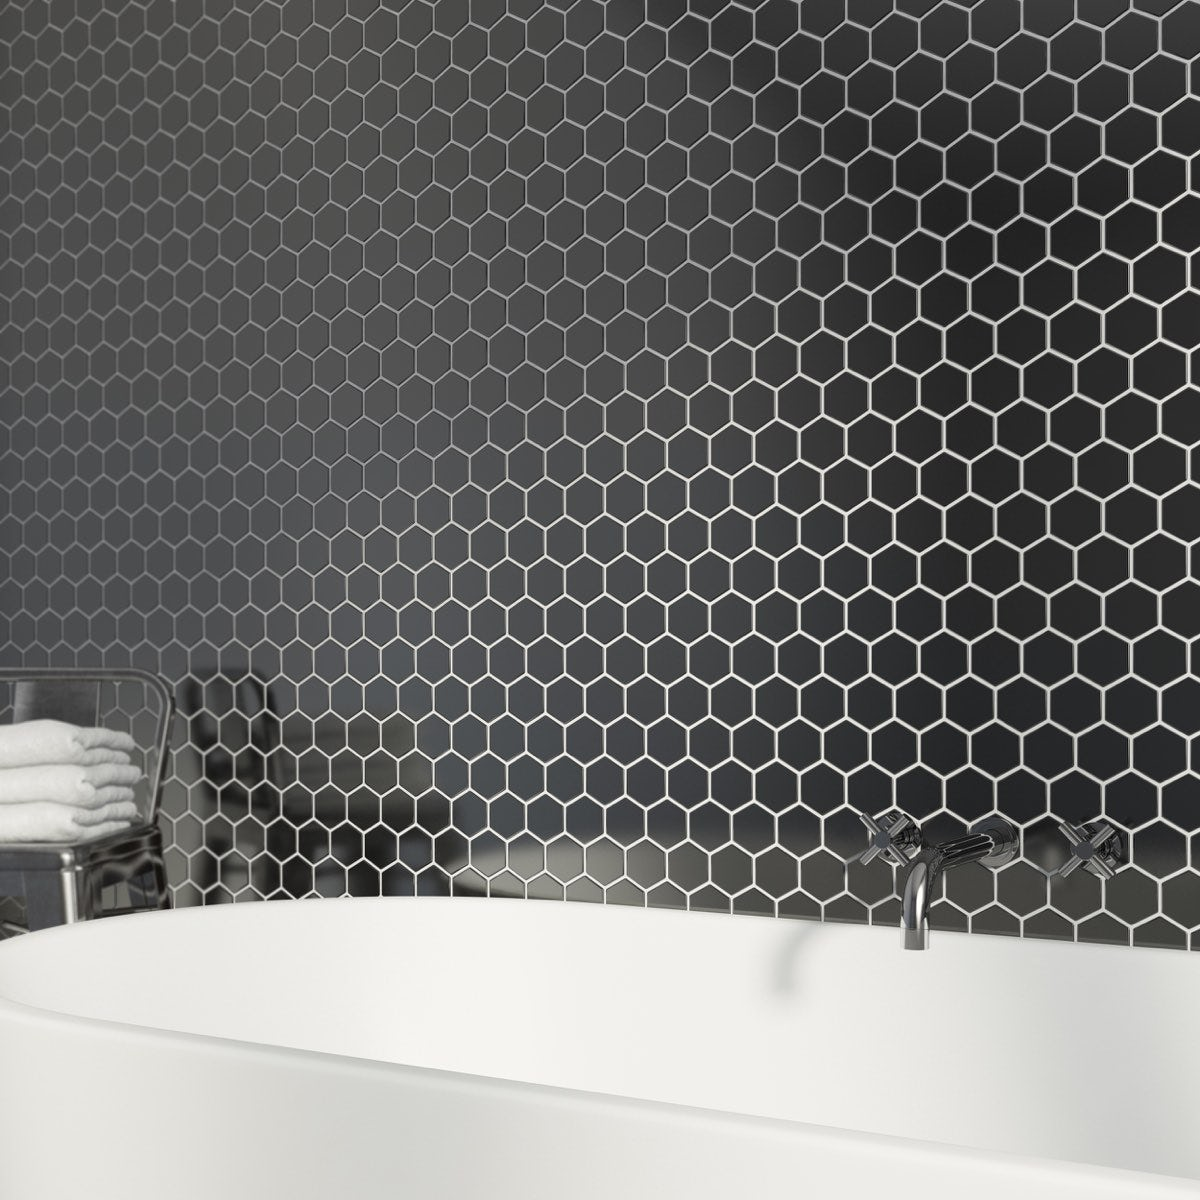 British Ceramic Tile Mosaic hex black gloss tile 300mm x 300mm - 1 sheet